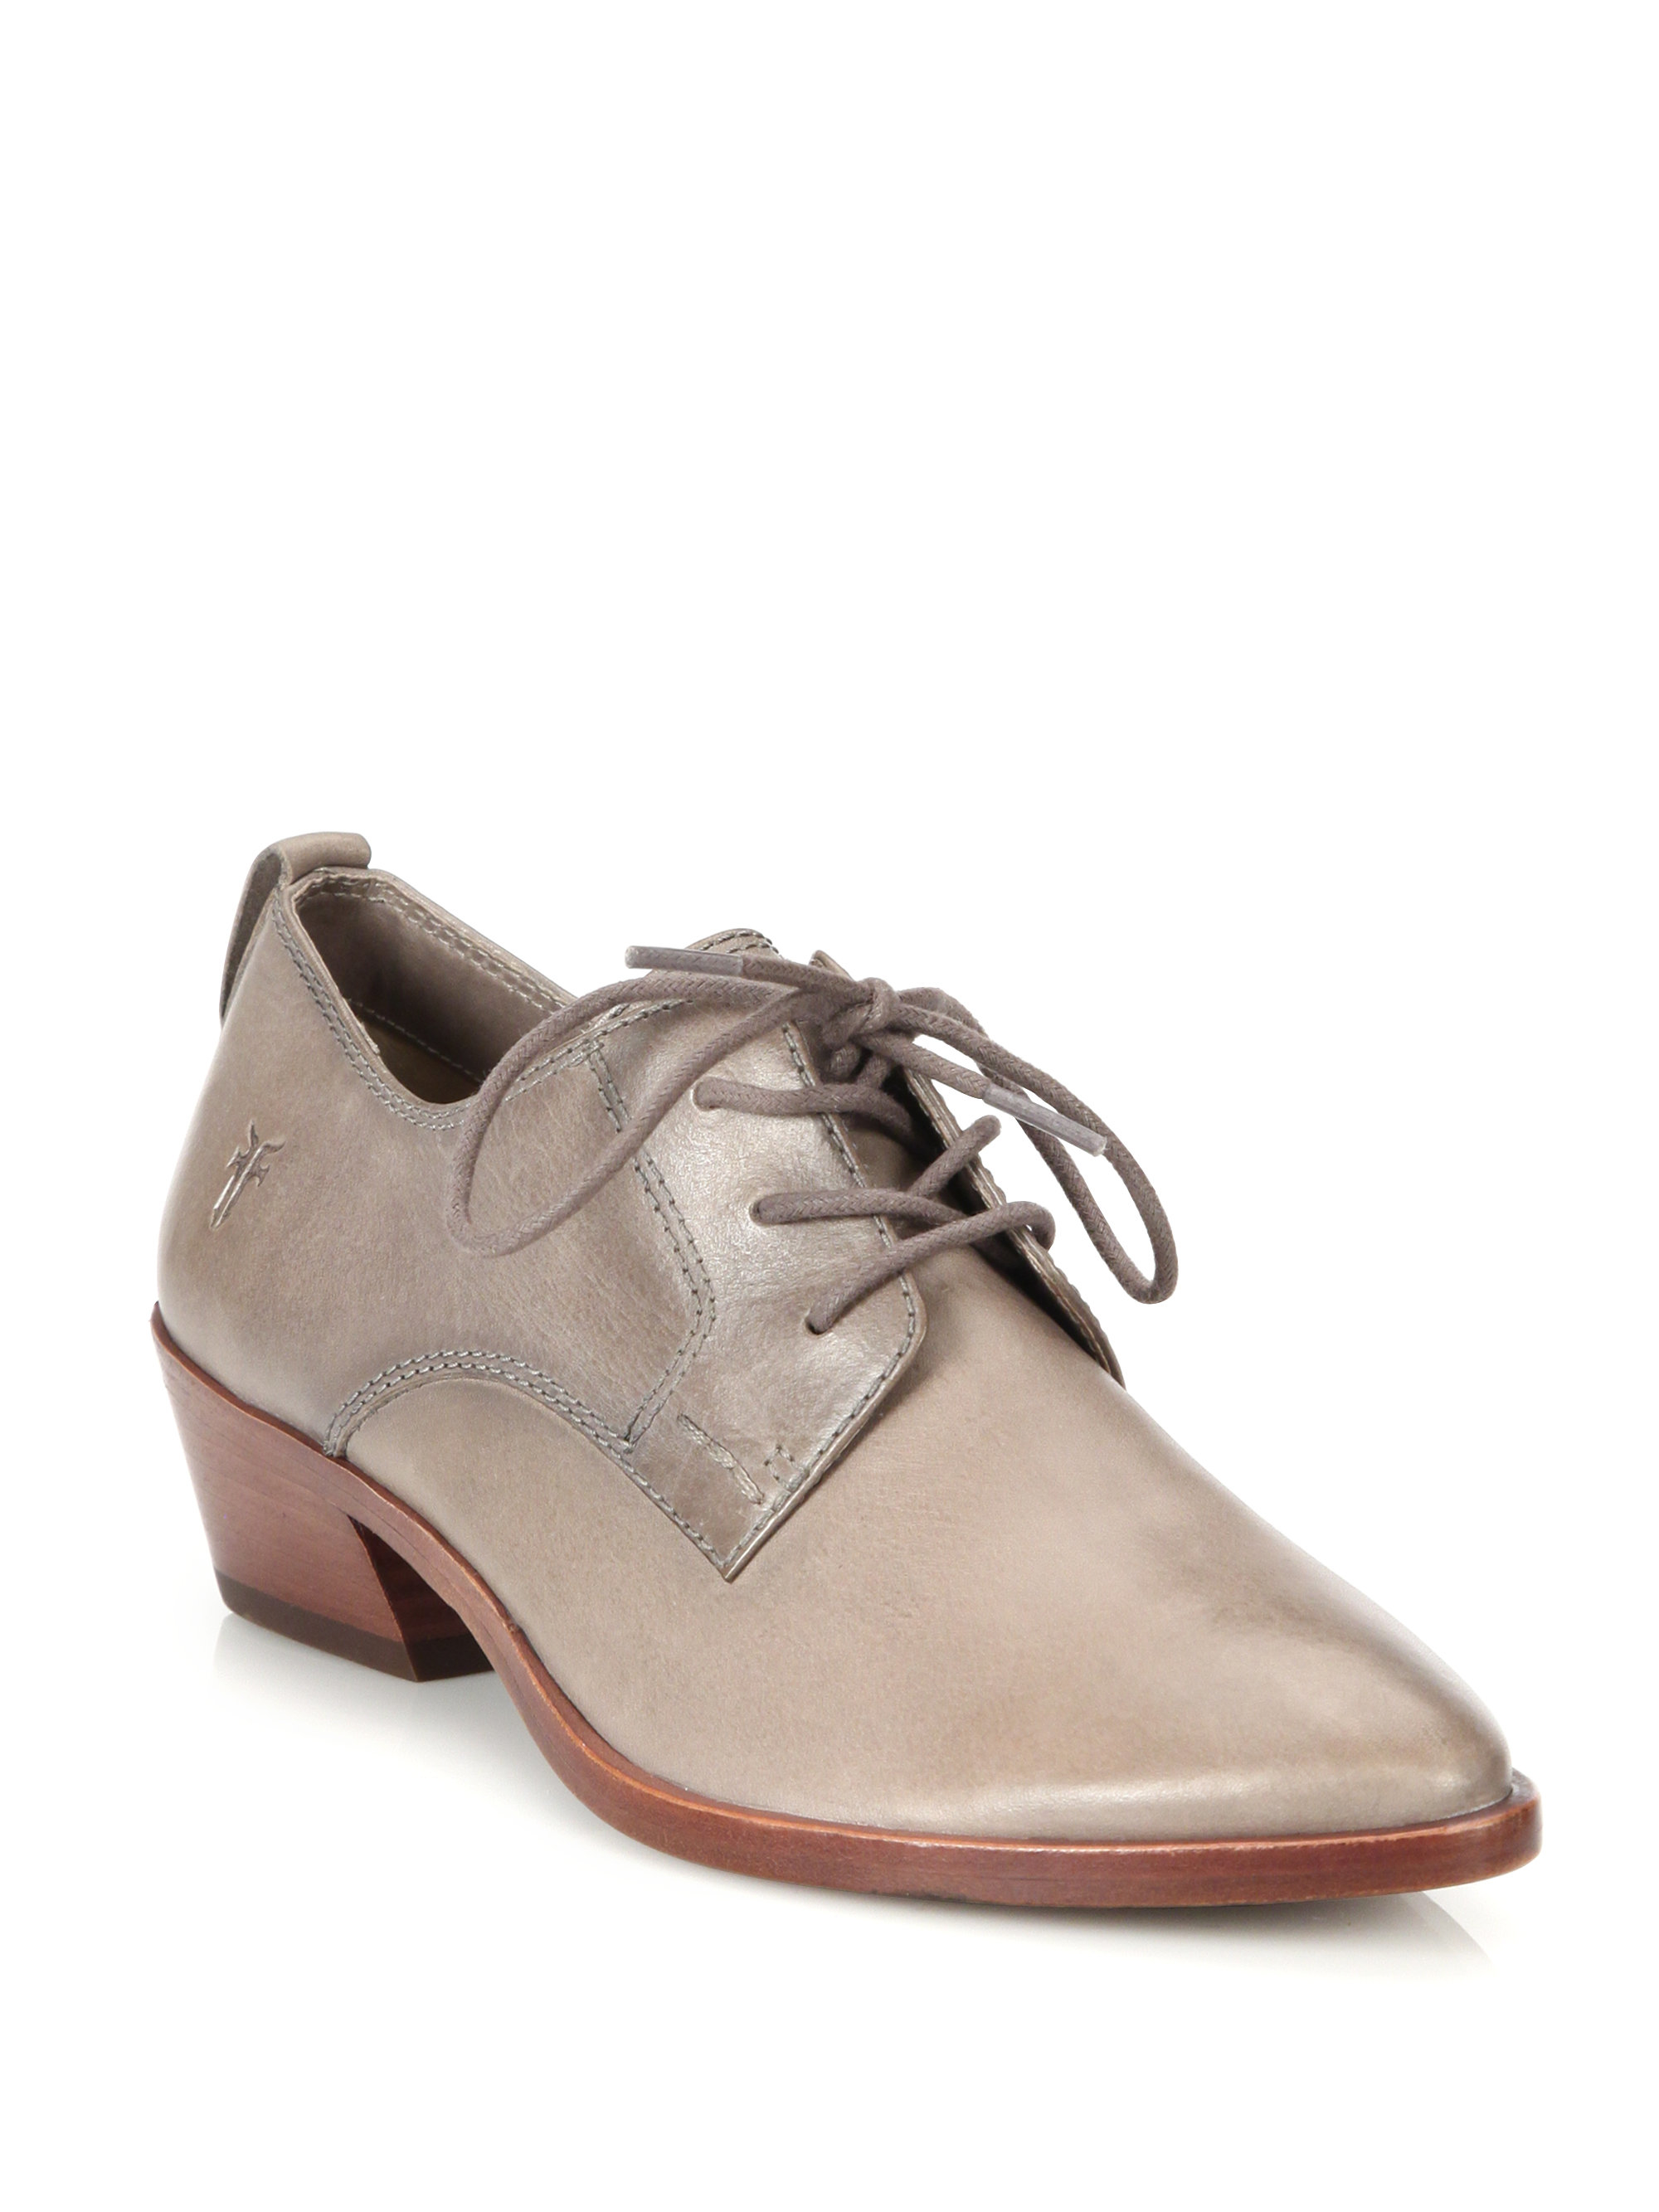 frye reese leather oxford shoes in gray lyst